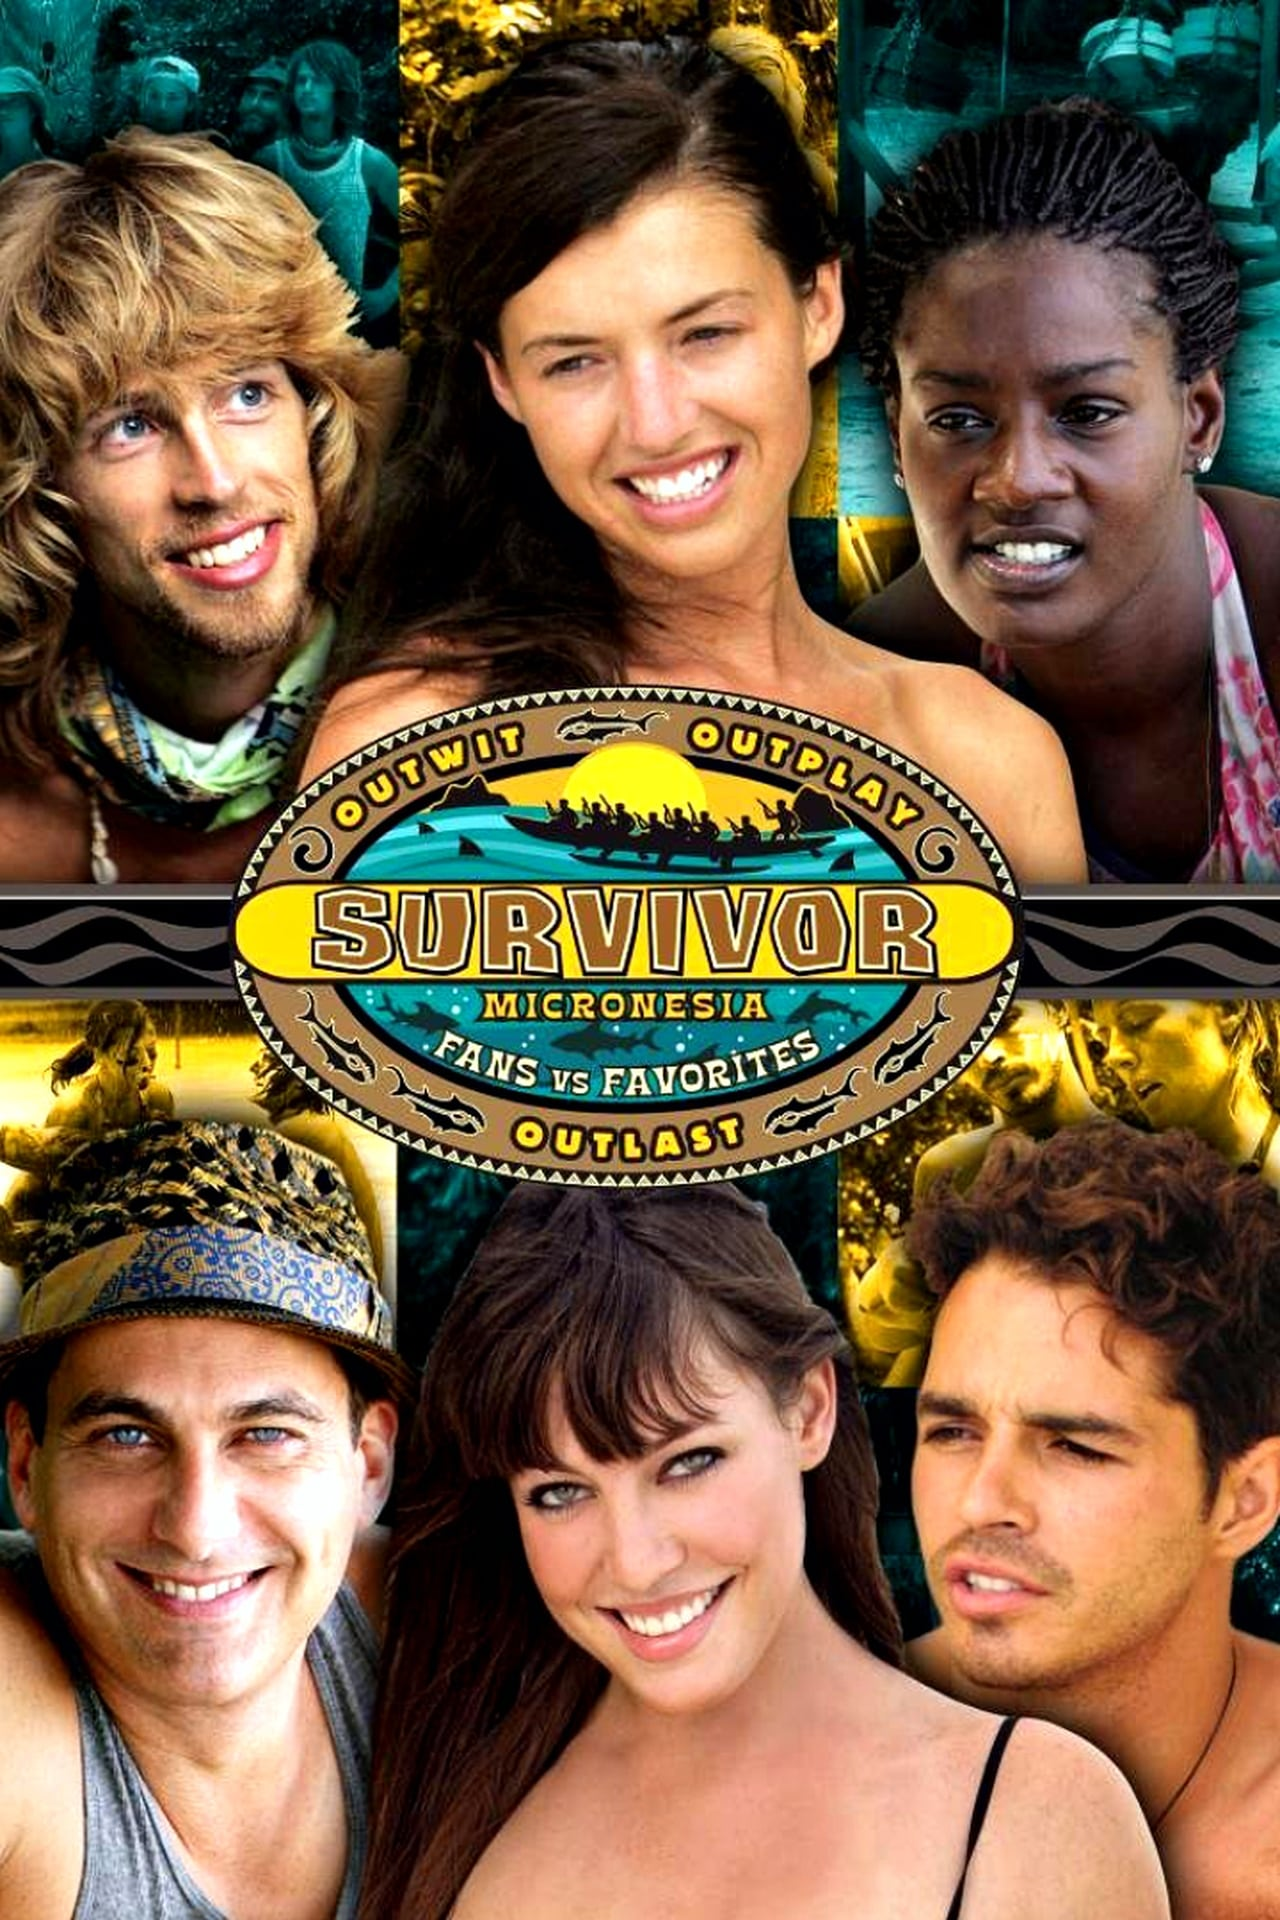 Survivor Season 16 (2008) putlockers cafe